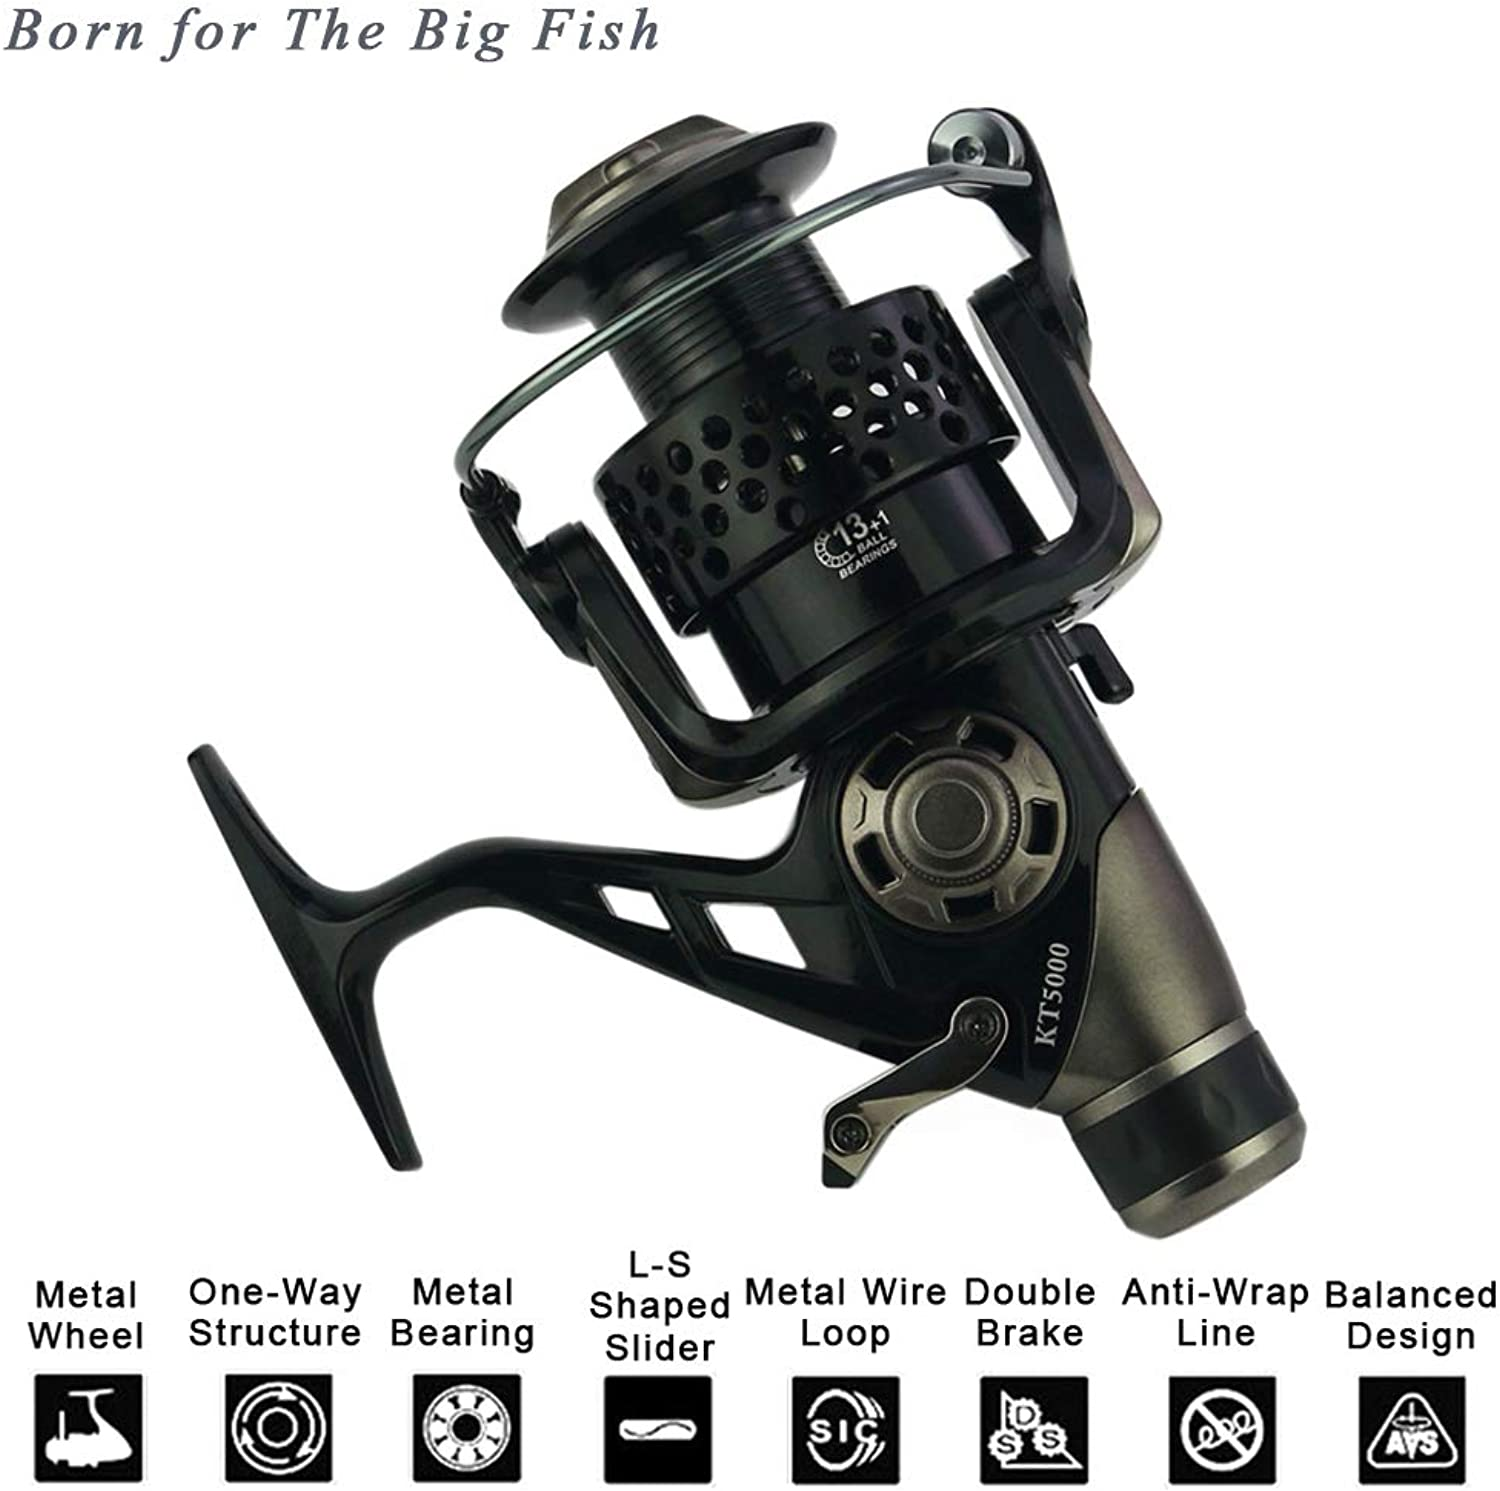 Carp Fishing Reels with Front and Rear Double Drag Brake System Reel 13+1 BB Left Right Interchangeable for Saltwater Freshwater Fishing, Born for The Big Fish, All Metal CNC Rocker, Light